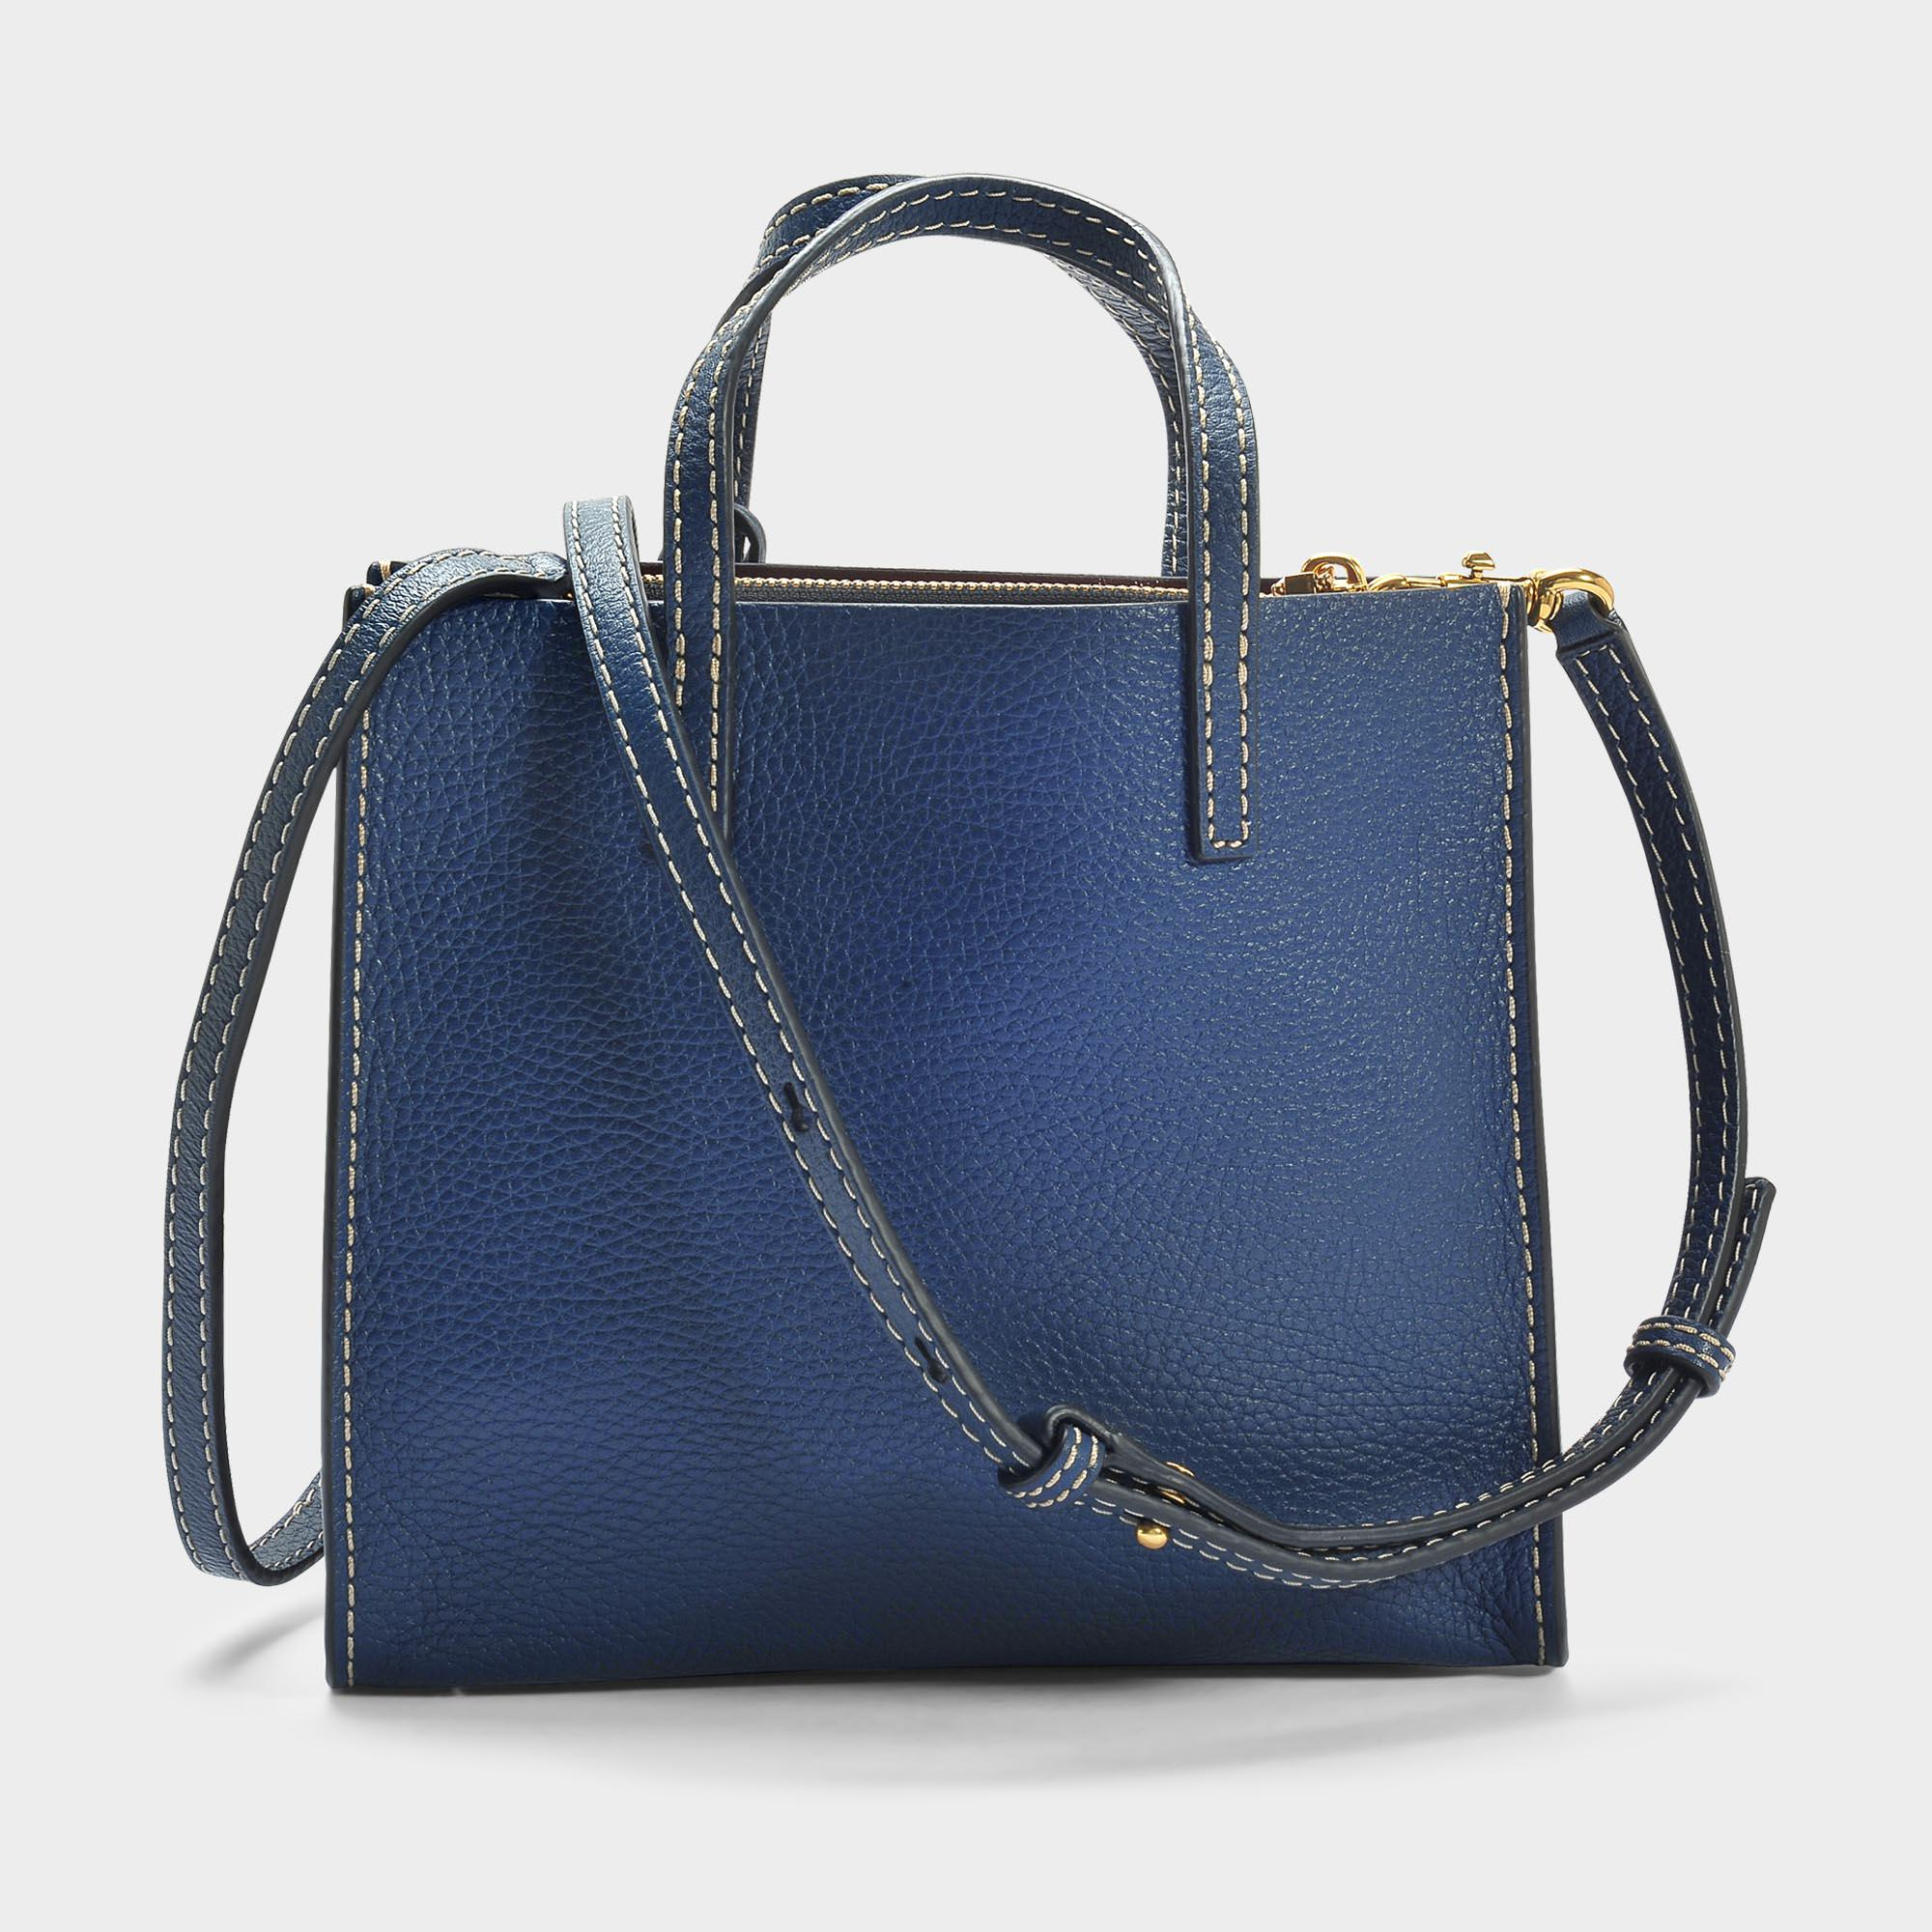 Marc Jacobs The Mini Grind Tote Bag In White Glow Cow Leather in Blue